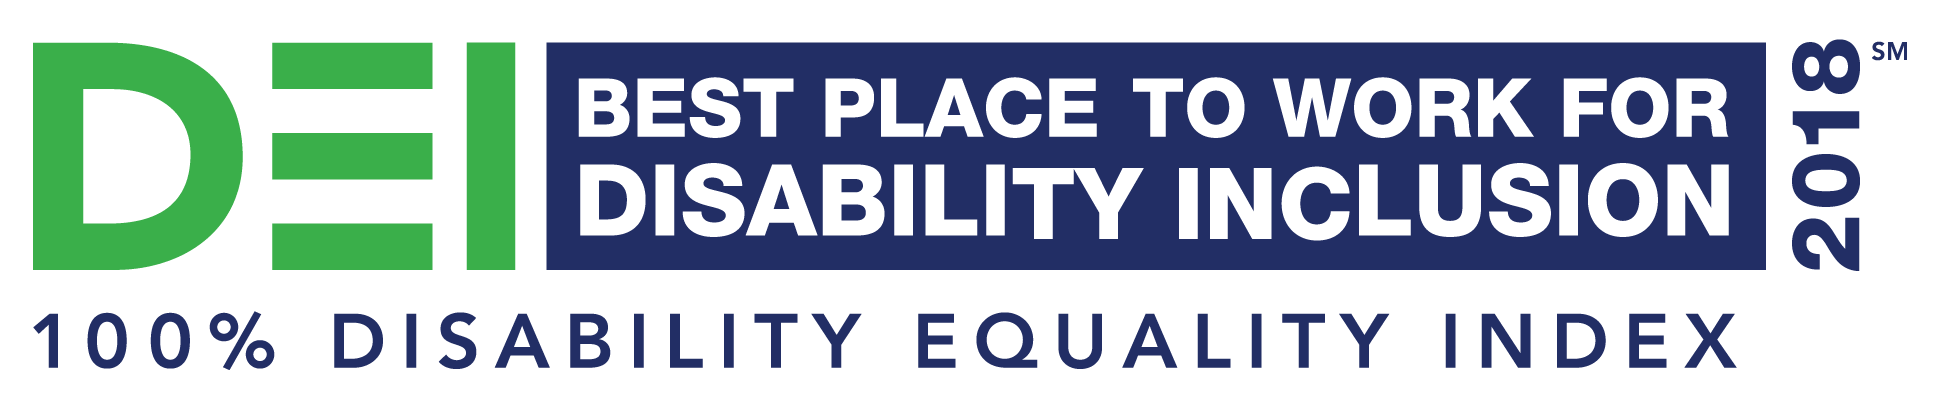 Disability Equality Index, voted Best place to work for Disability Inclusion 2018